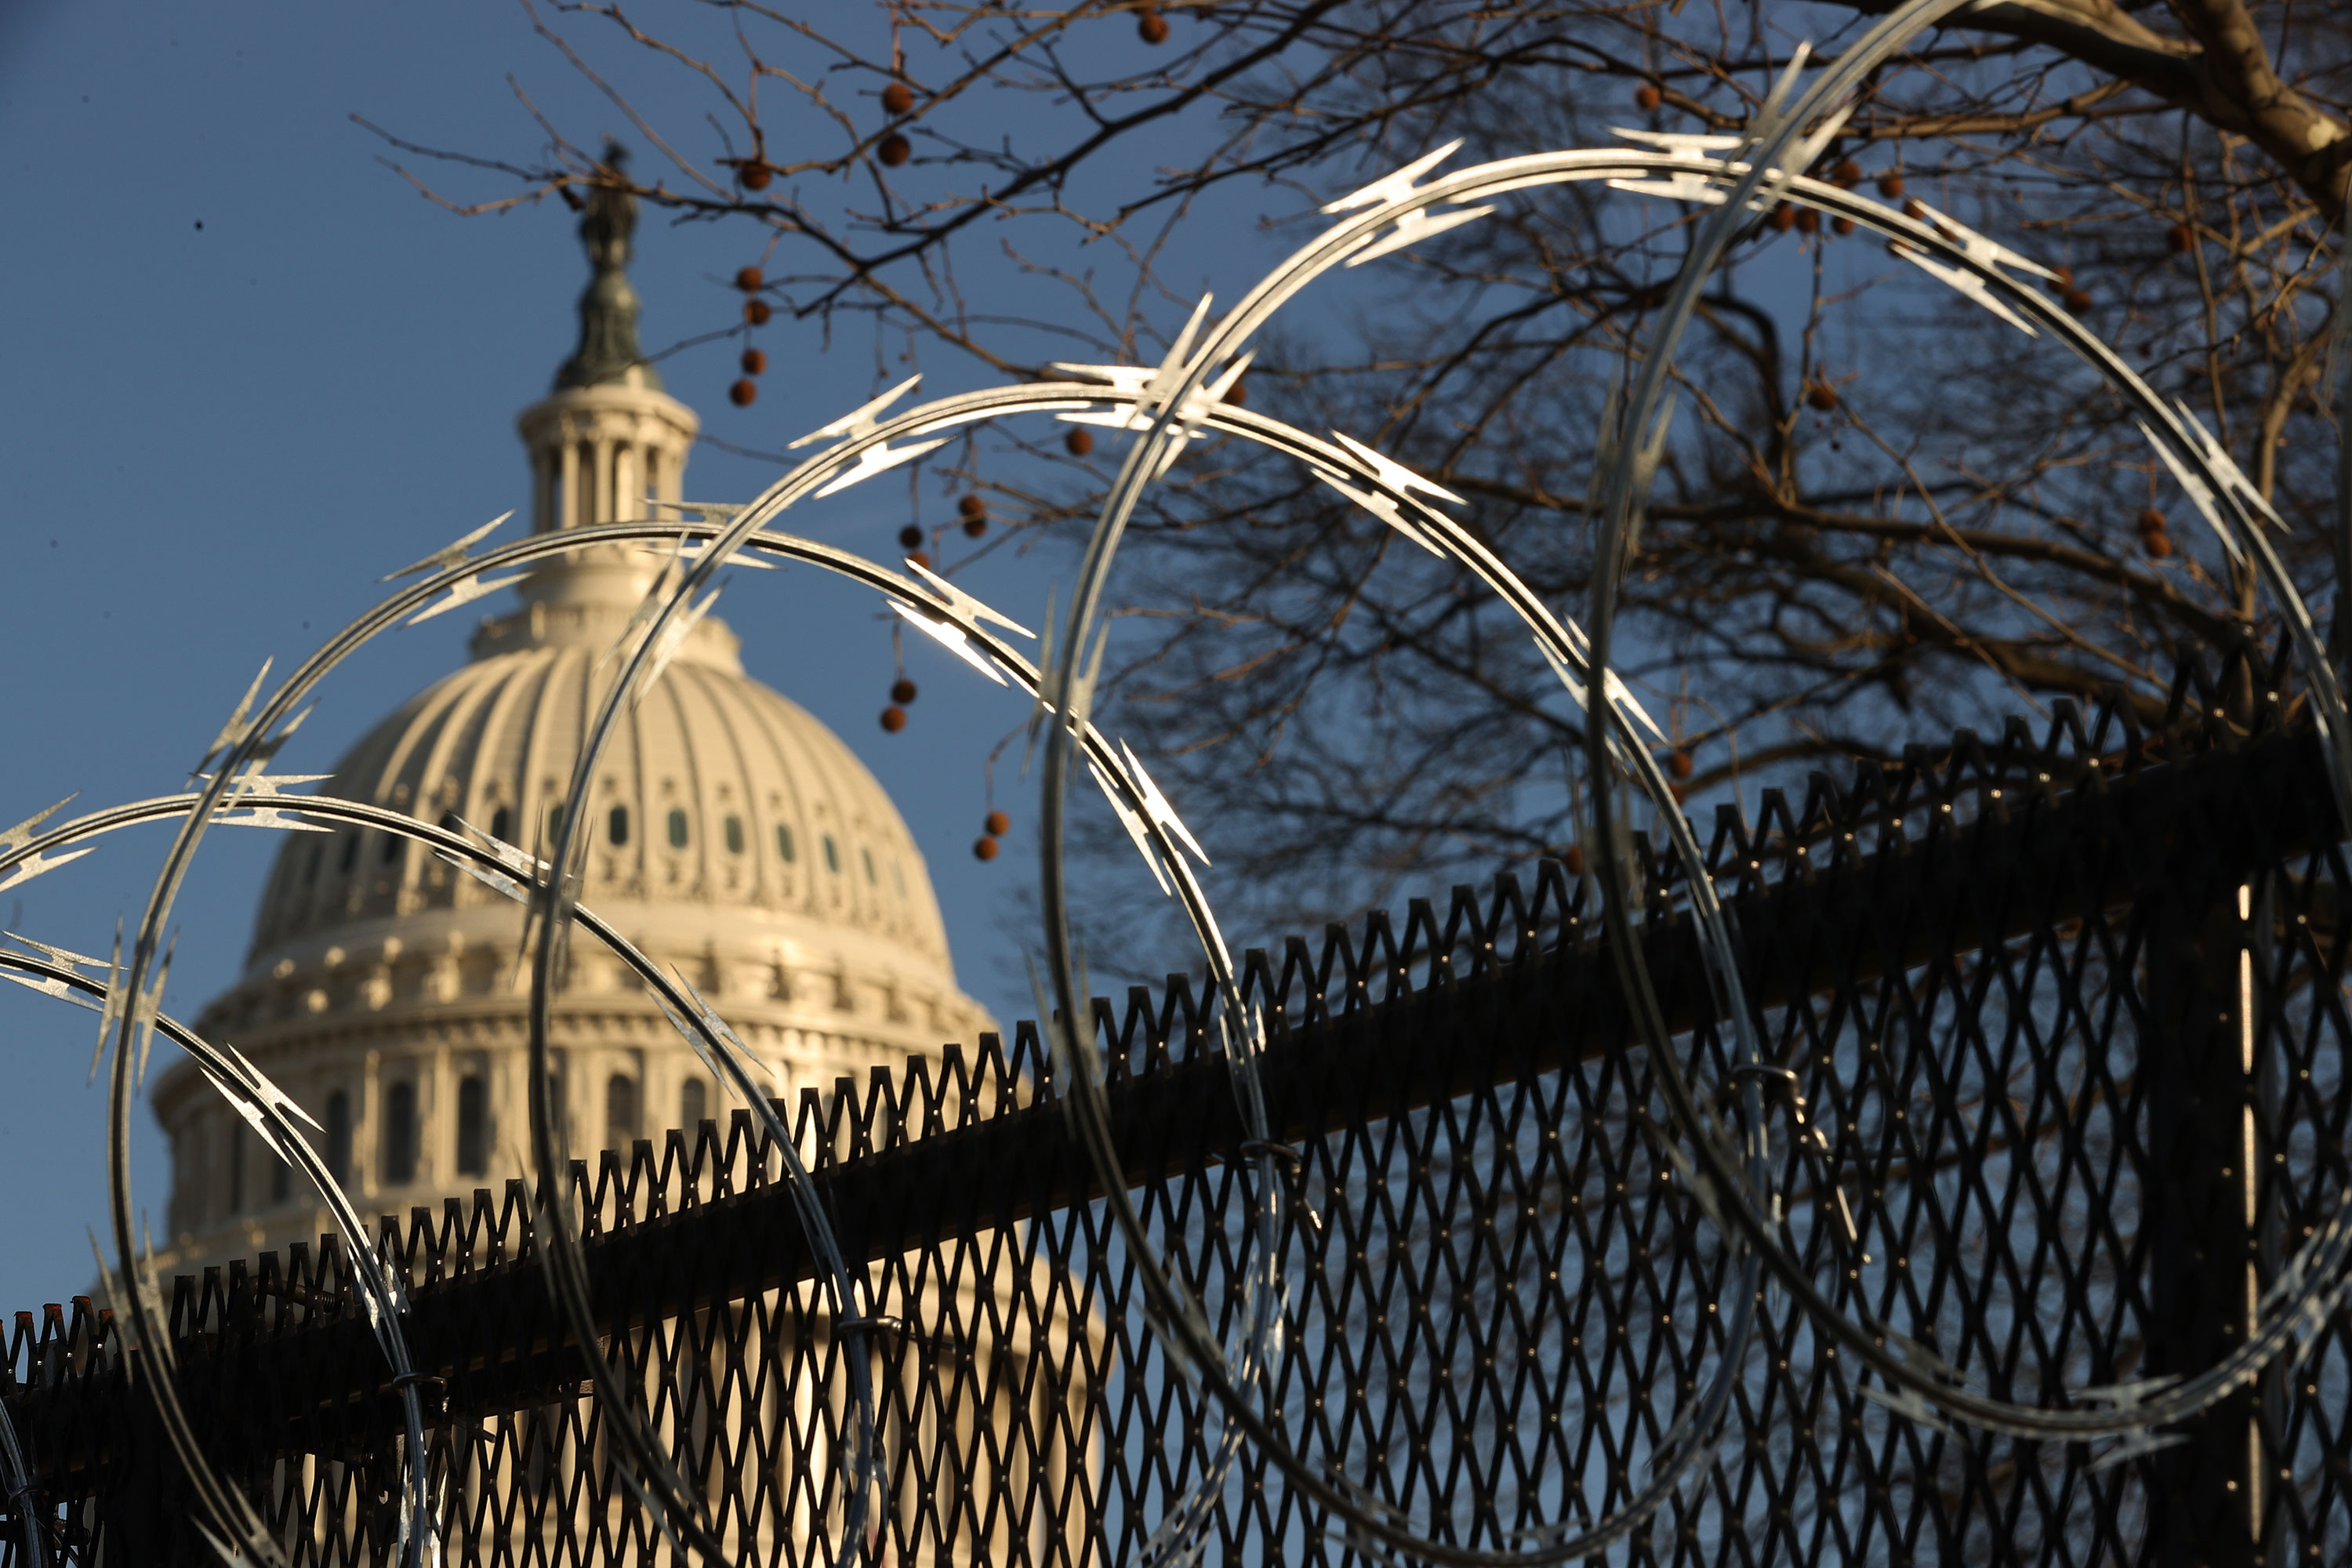 Concertina razor wire tops the 8-foot fence that surrounds the Capitol in Washington on January 14.